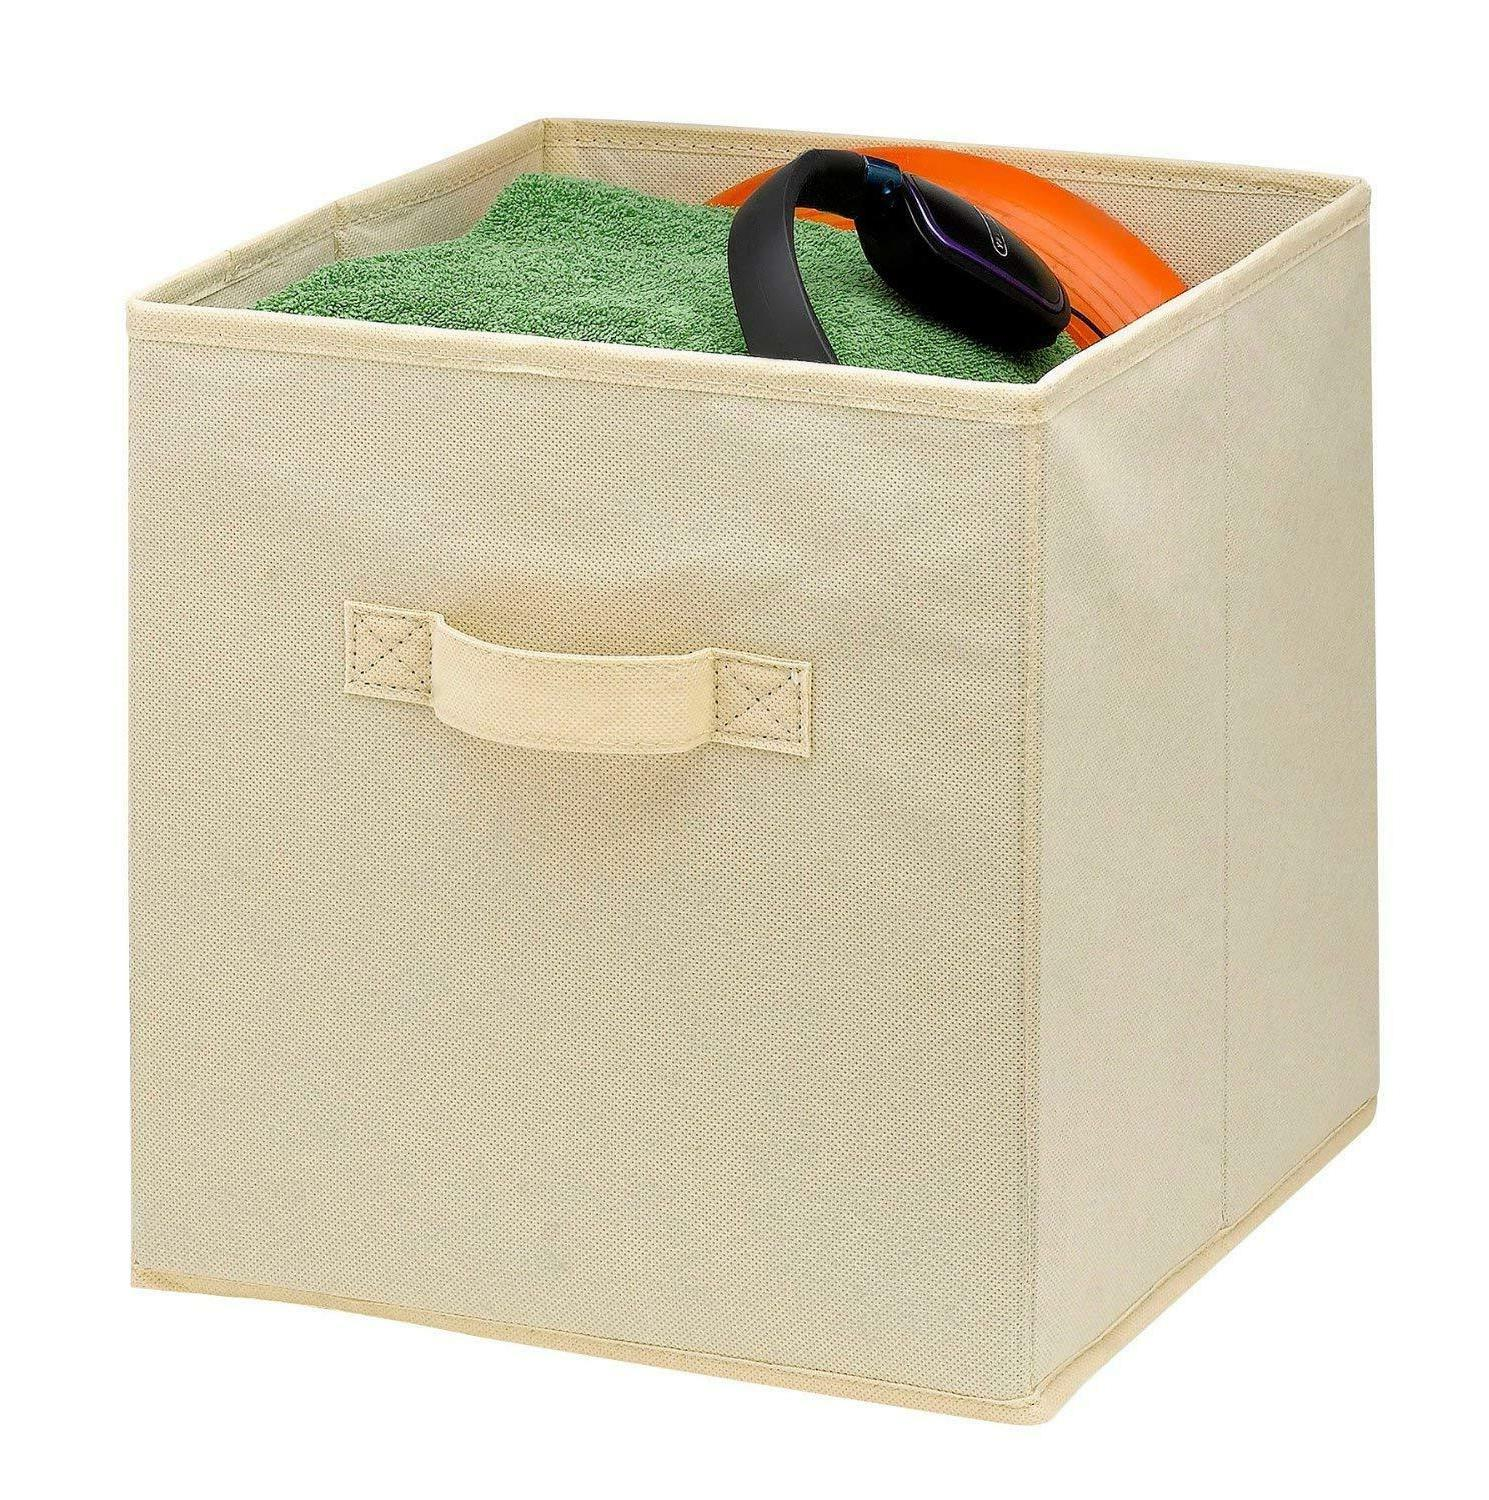 6 Foldable Cubes Collapsible Fabric Bins Shelf Organizer